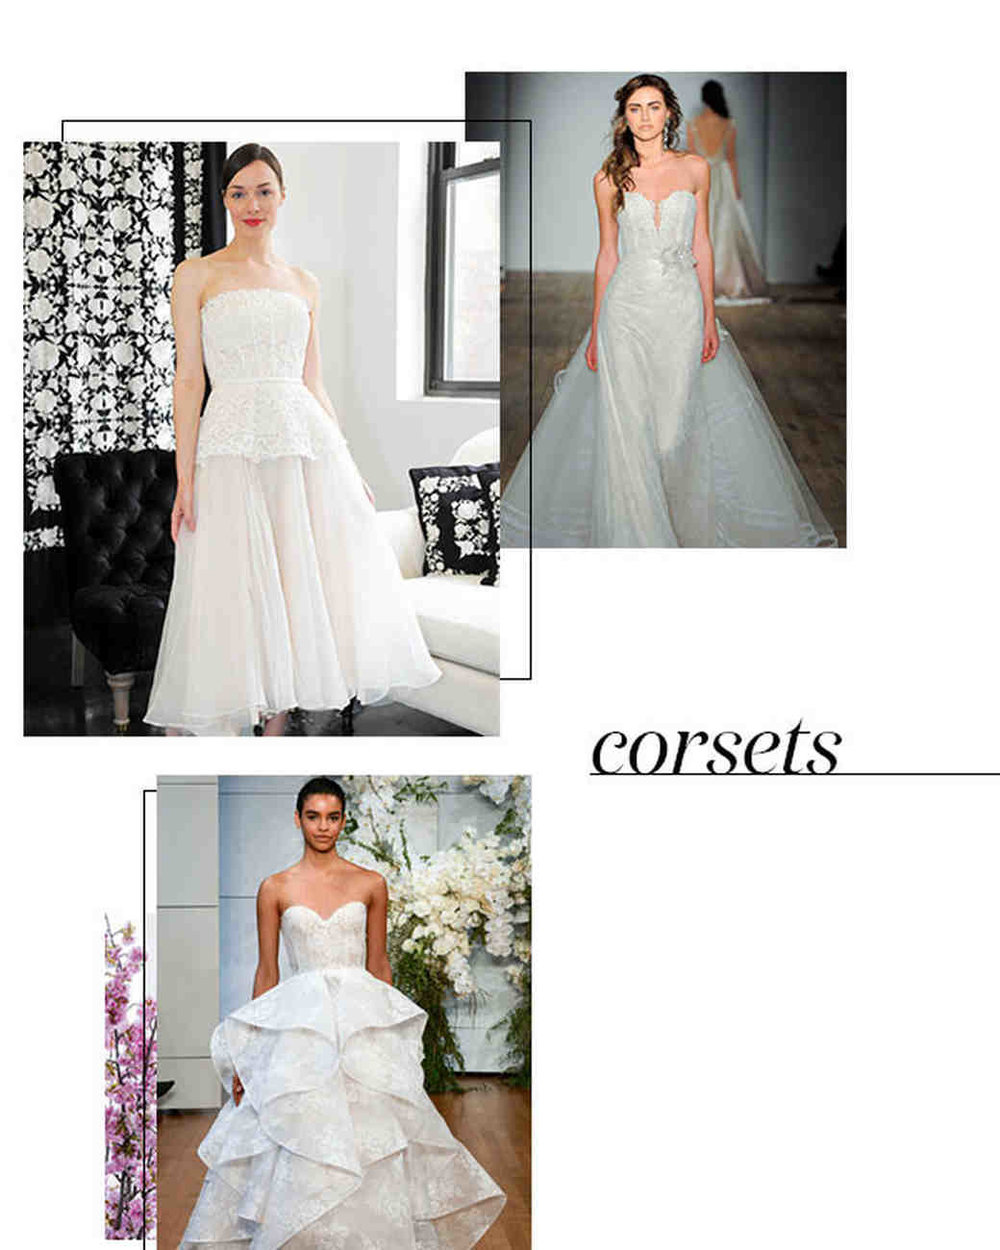 bridal-fashion-week-spring-2018-trends-corsets_vert.jpg